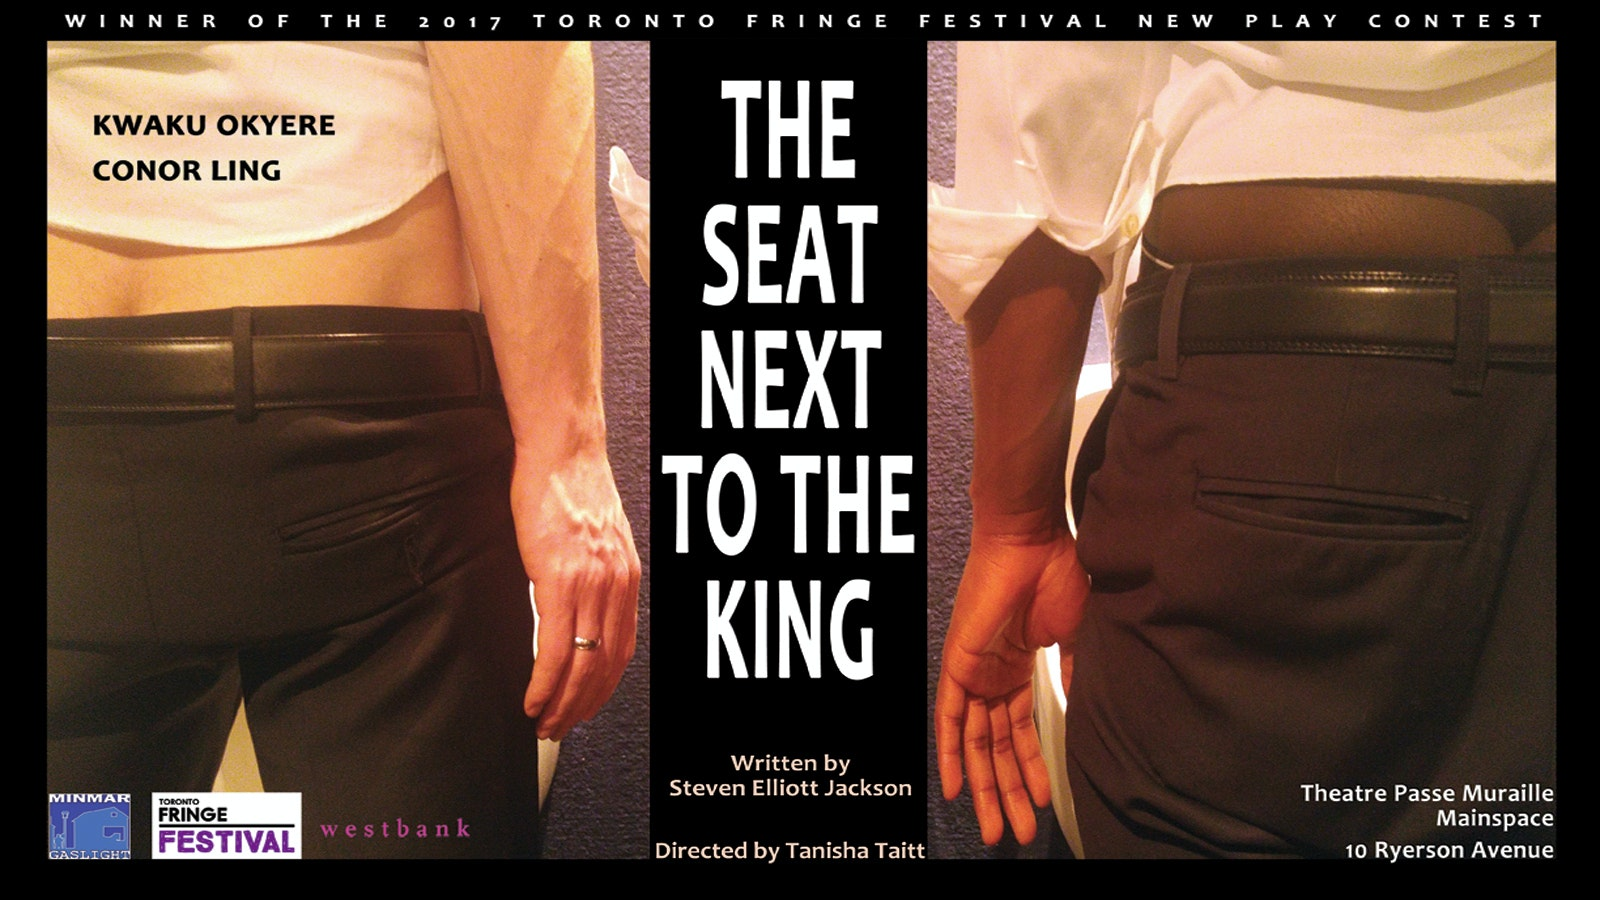 The Seat Next to the King